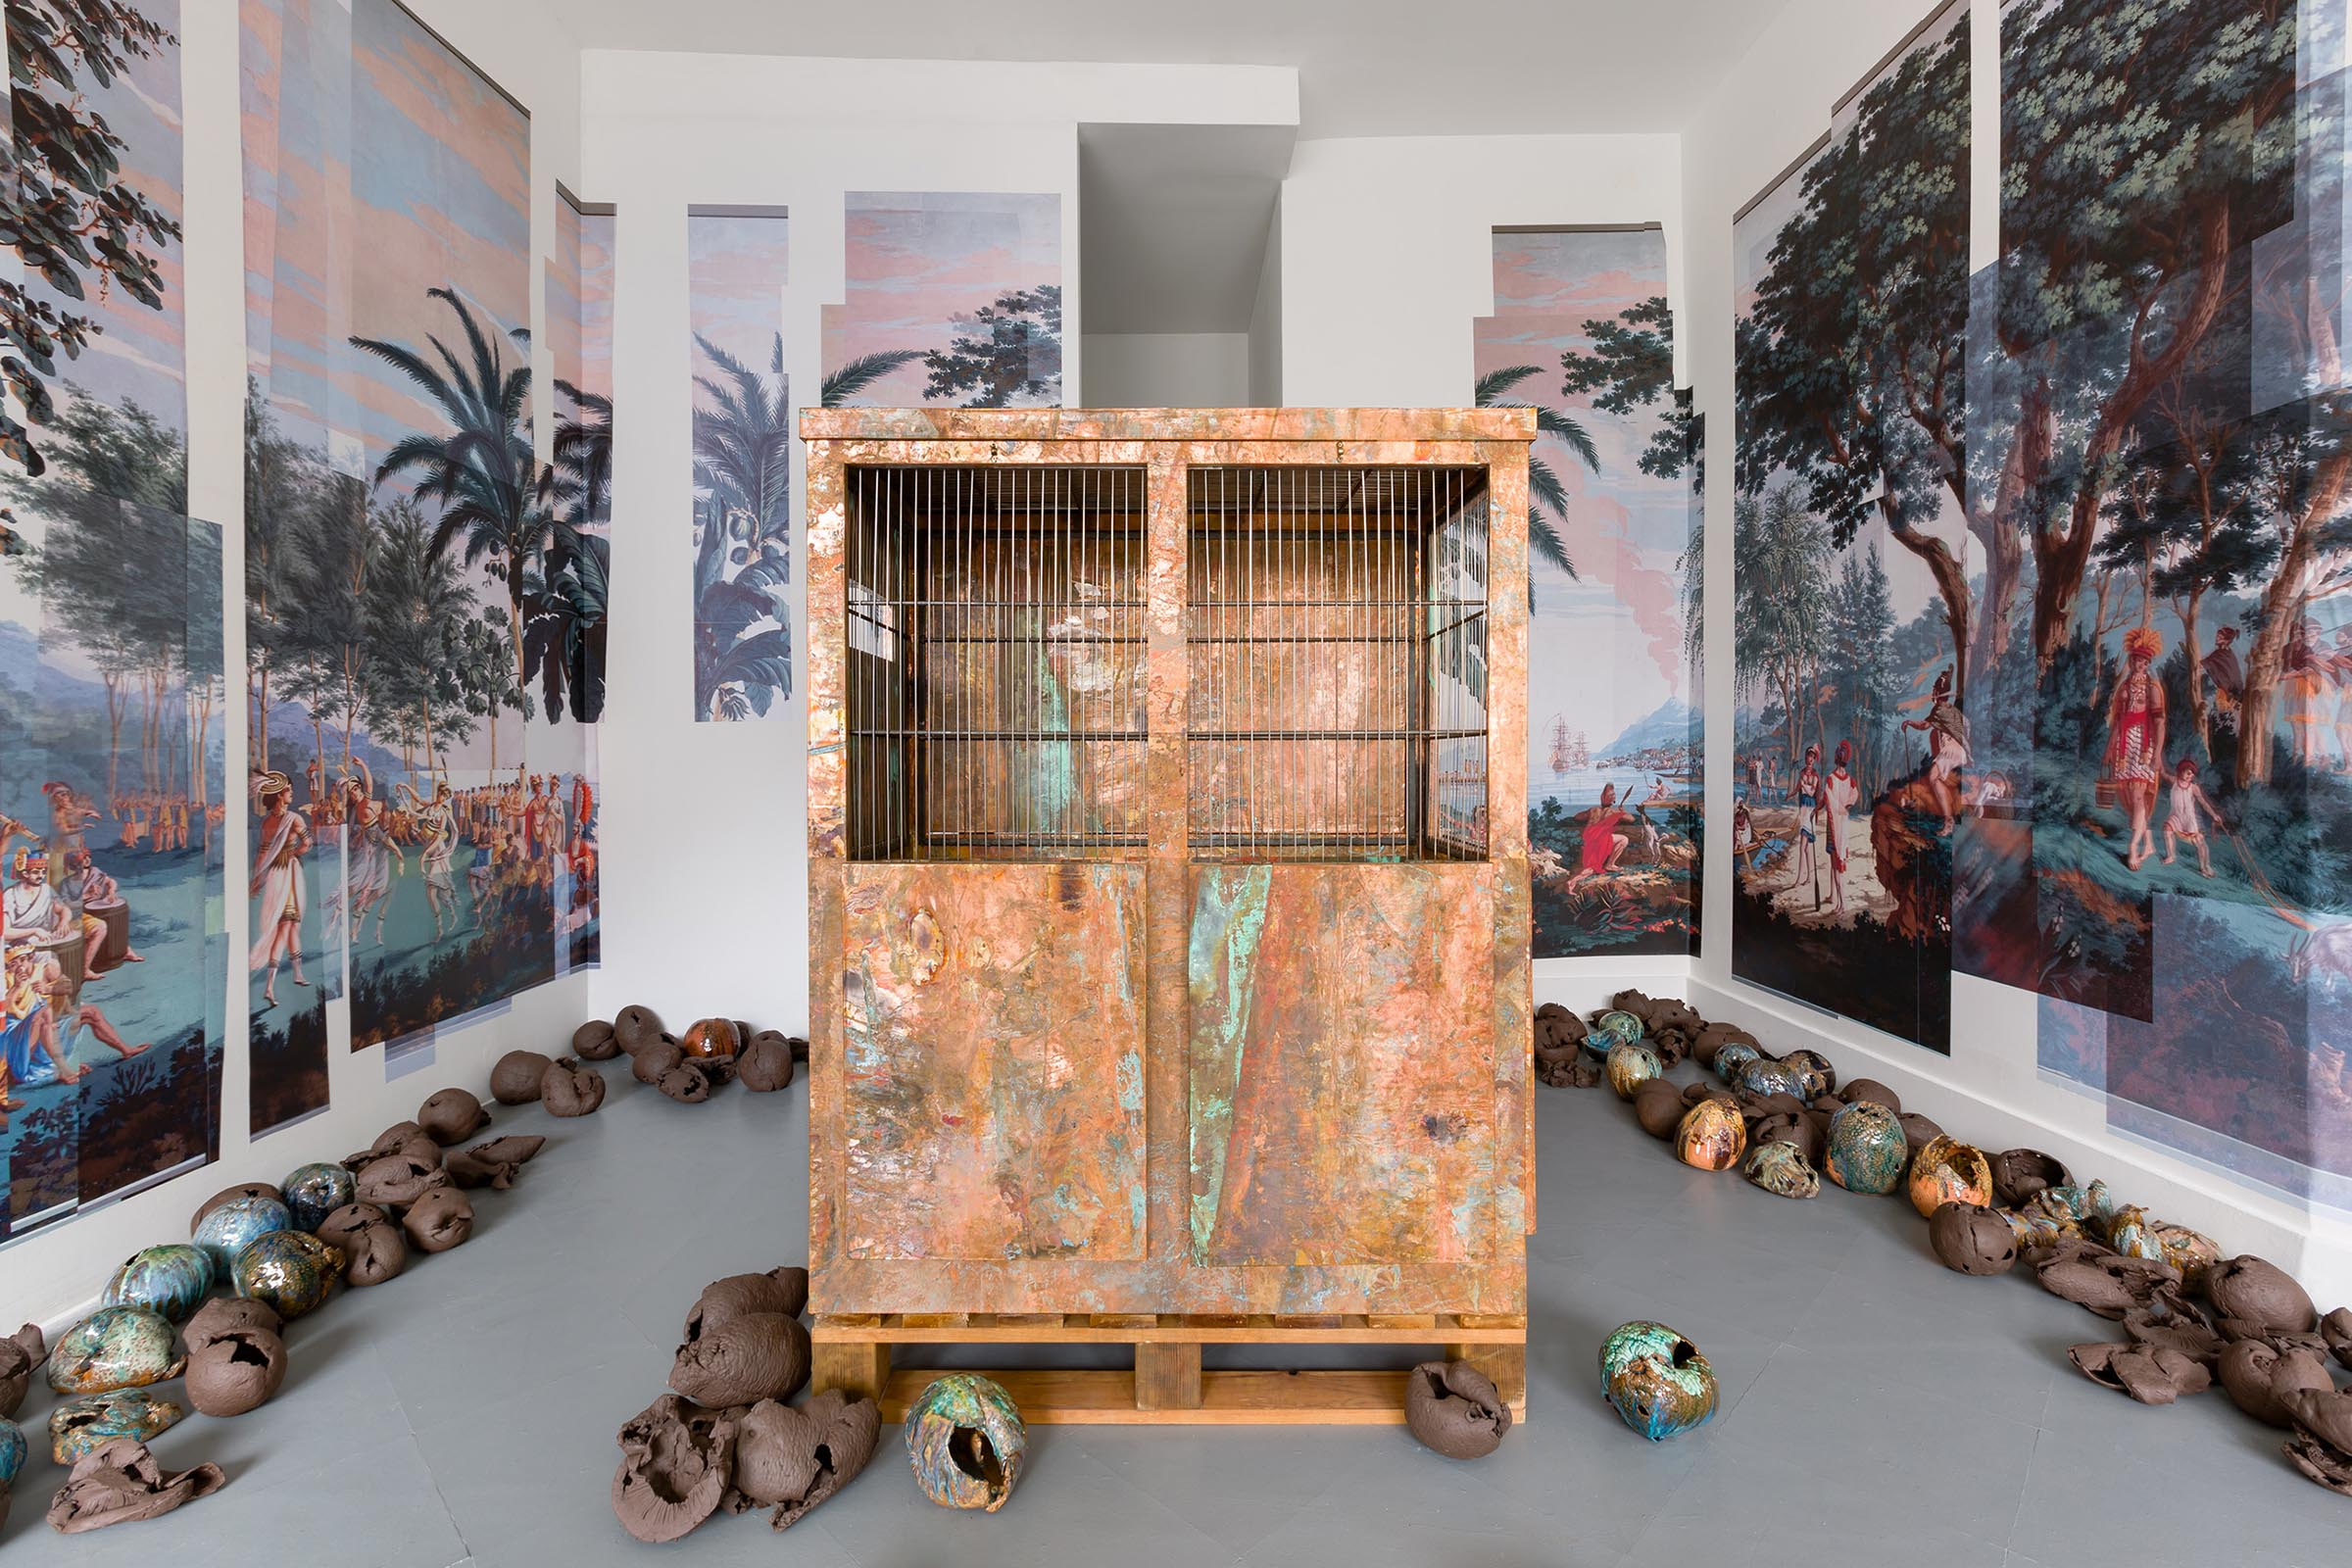 Southern Oceans, Rachelle Dang exhibition at Motel gallery